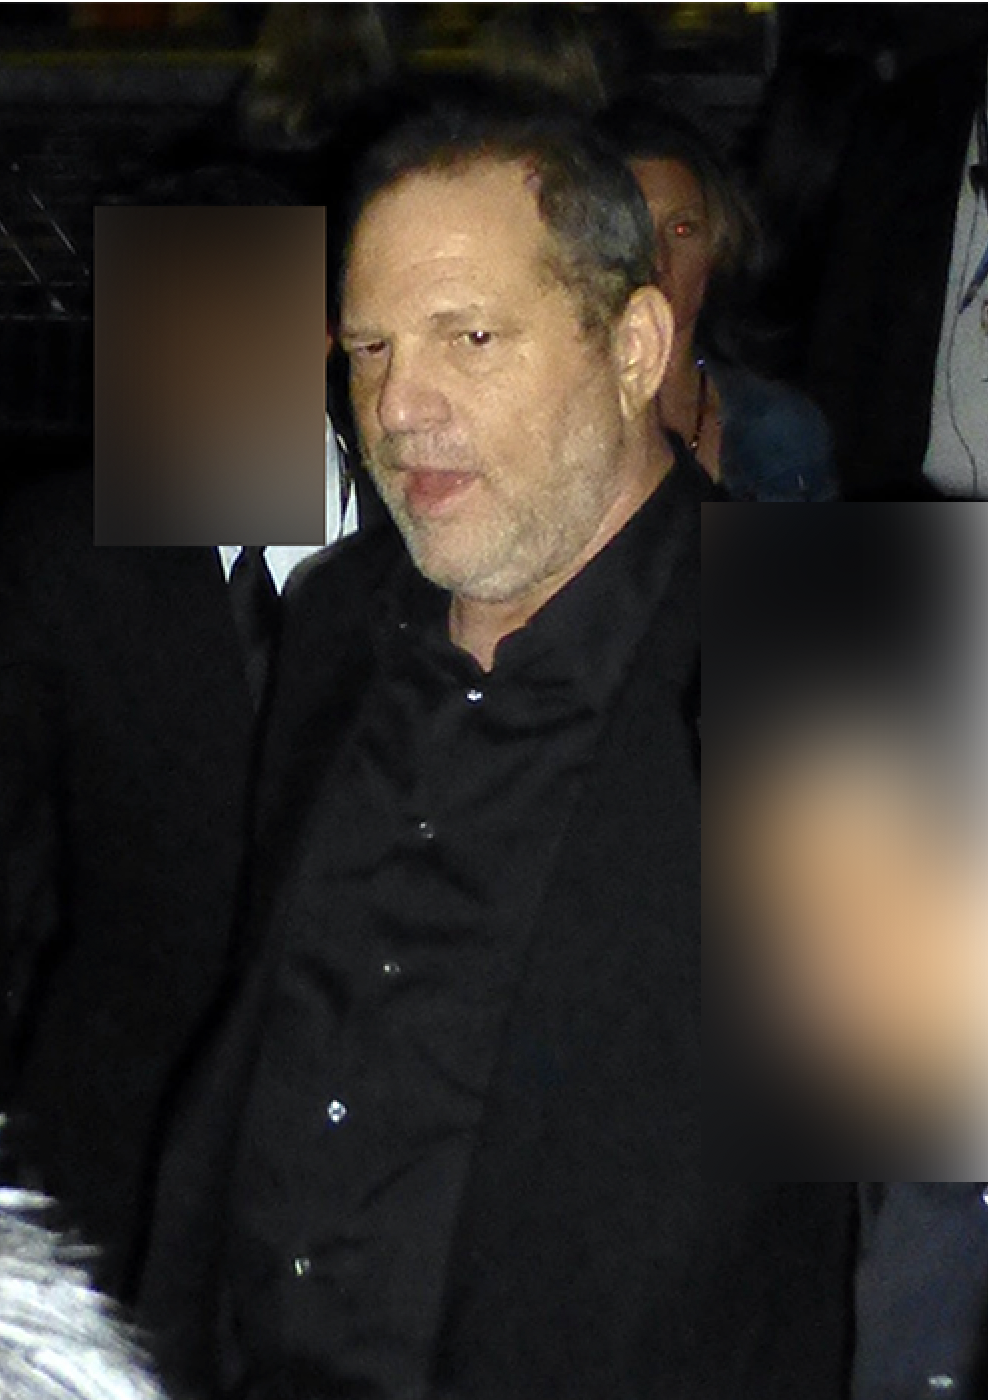 Racketeering laws: lawyers even sought to use RICO laws in pursuit of disgraced Hollywood mogul Harvey Weinstein and his associates because of his allegedly long course of criminal conduct toward women (c) Creative Commons